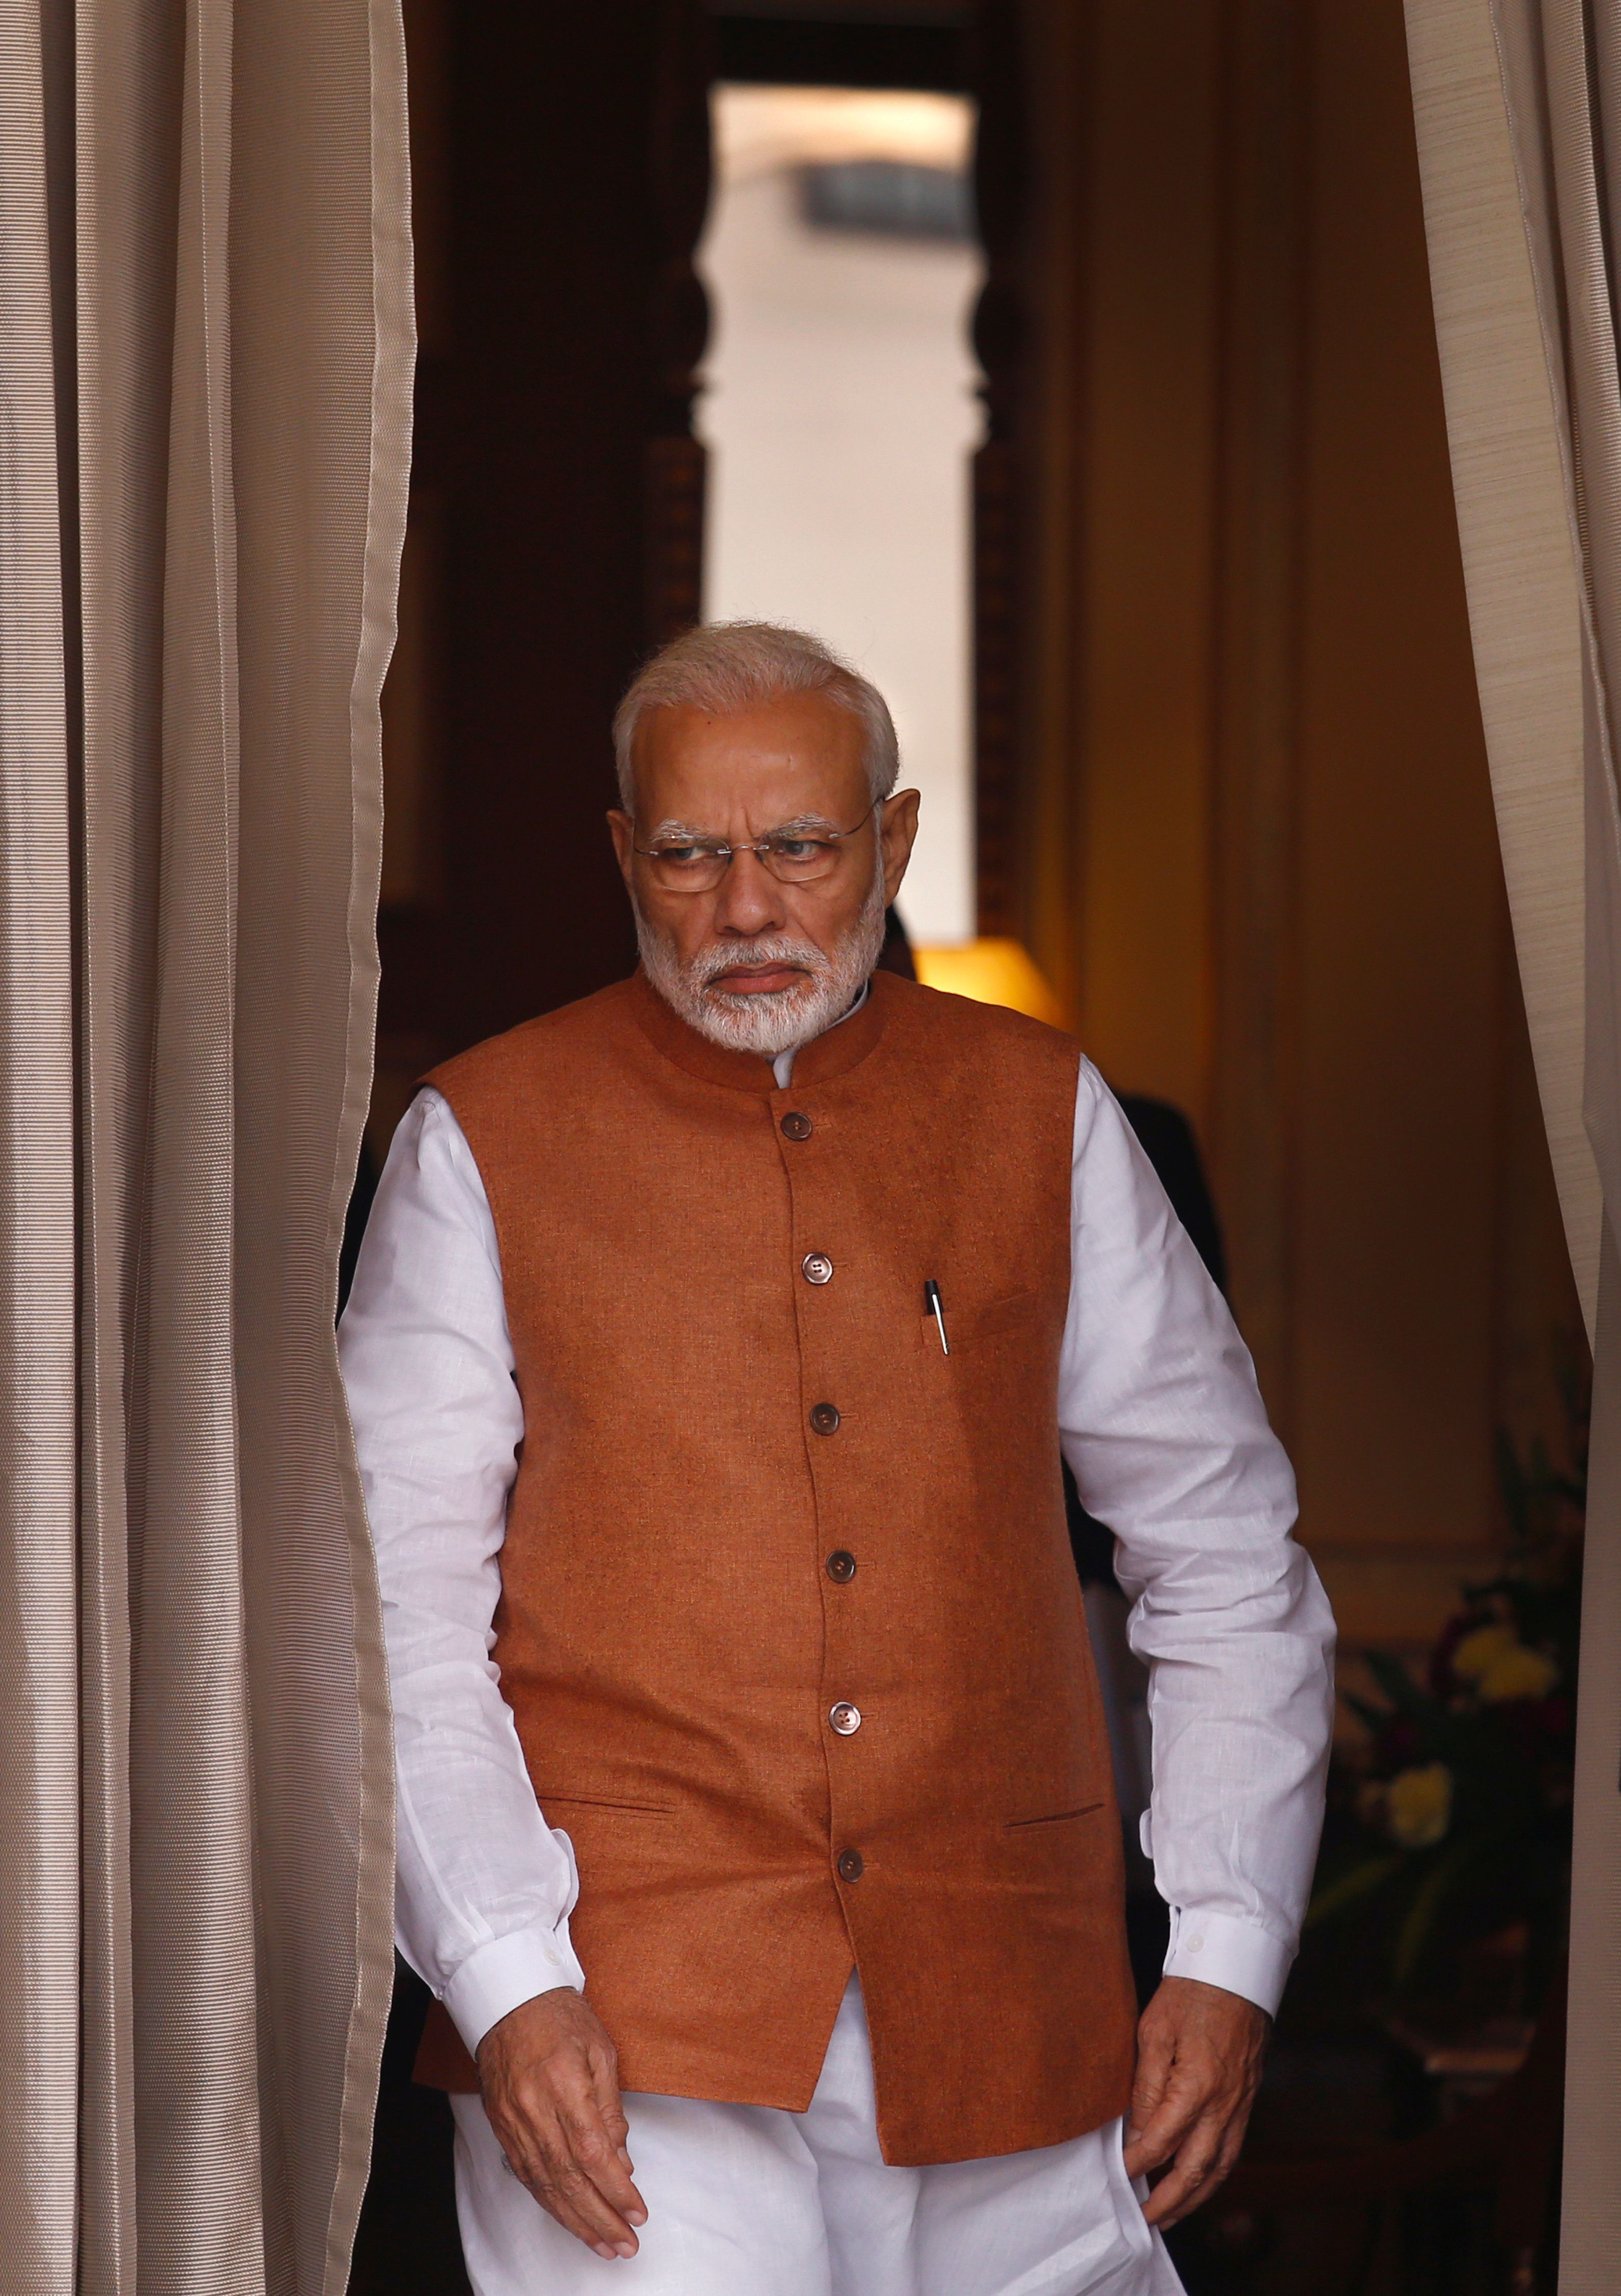 What's The Point Of Modi's 'Interviews' If He Won't Answer Real